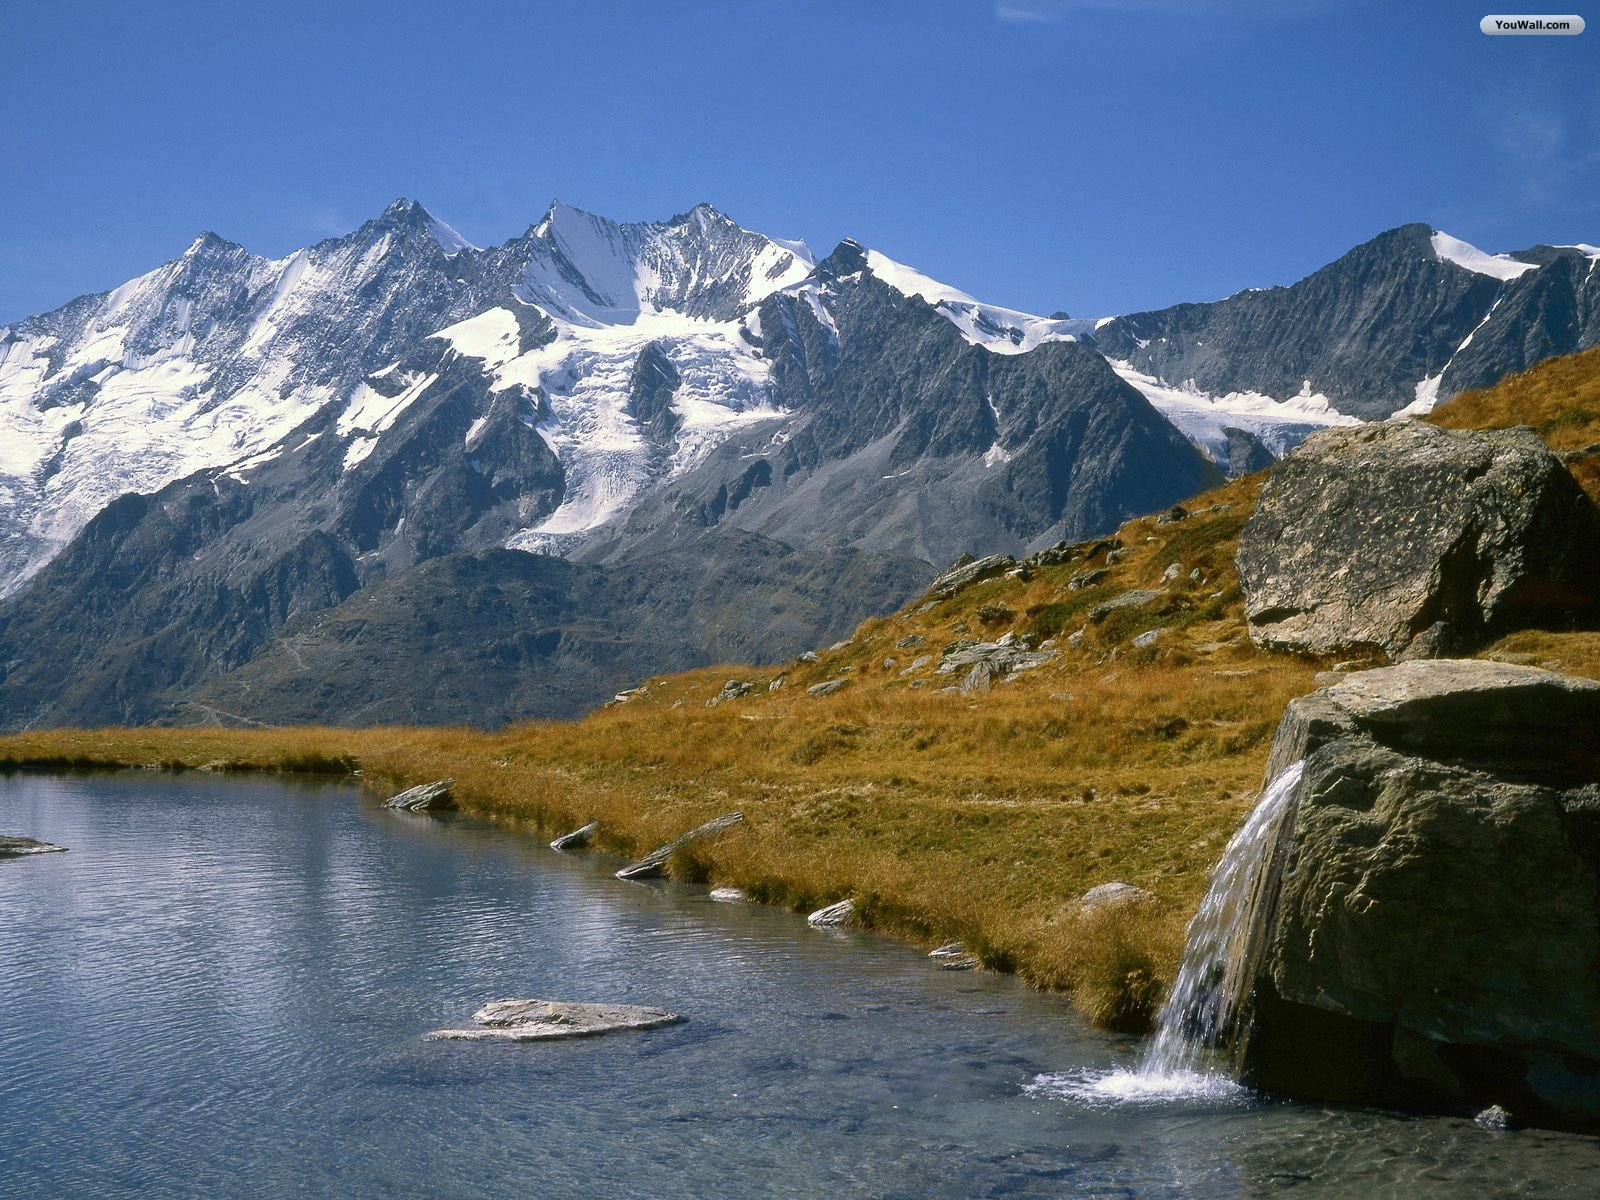 World Beautifull Places: Switzerland Mountains Wallpapers 2013